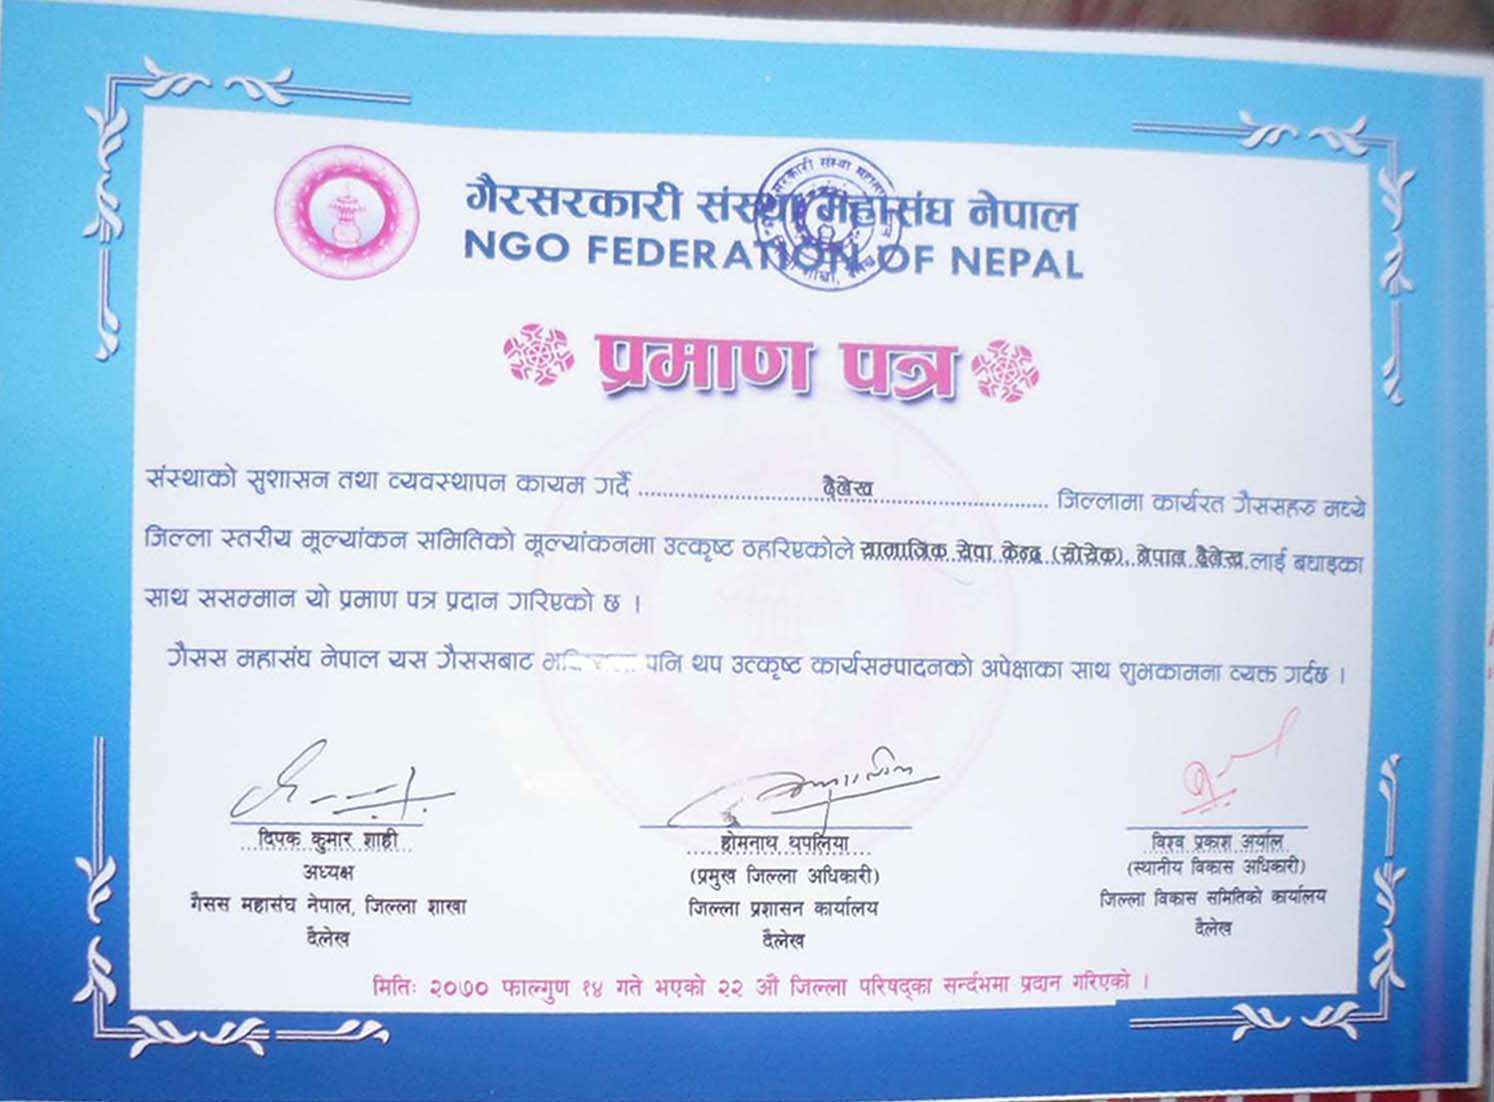 SOSEC is awarded as the best governance NGO in Dailekh by NGO federation.